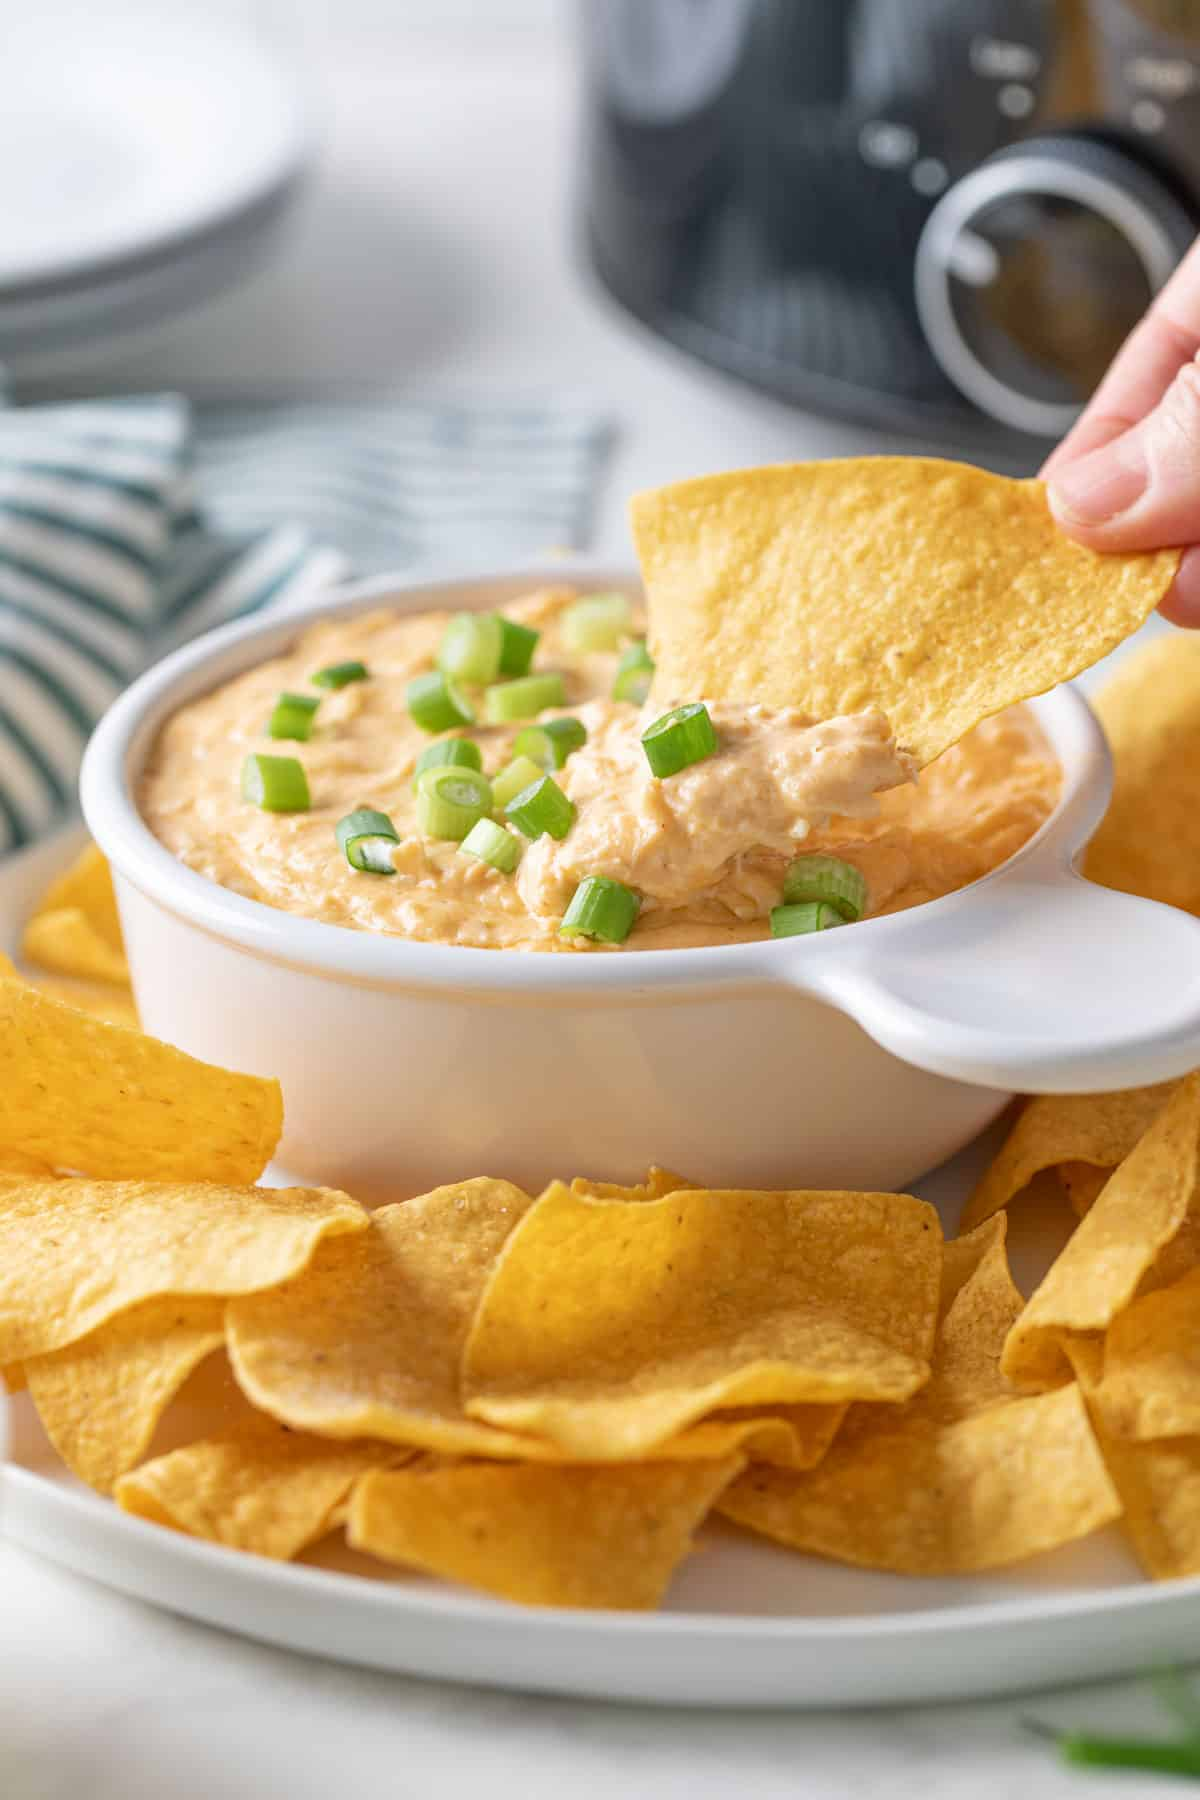 A tortilla chip being dipped into a bowl of crock pot chicken enchilada dip.